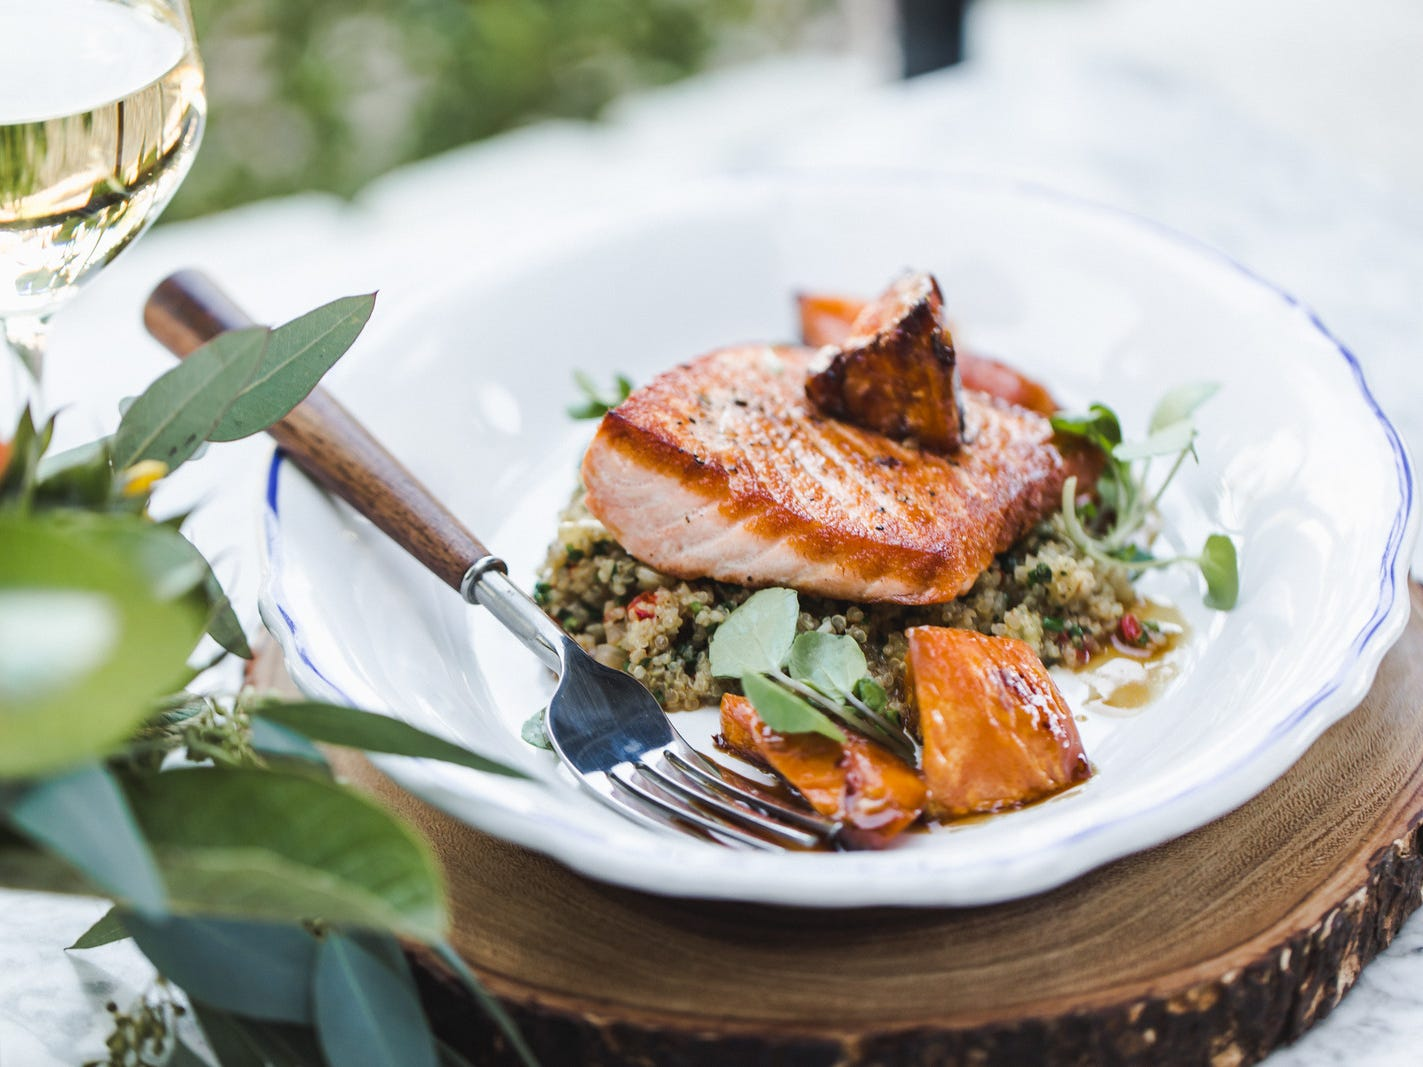 Roasted Scottish Salmon with glazed sweet potato, herbed quinoa, and upland cress at Doughbird Pizza & Rotisserie.